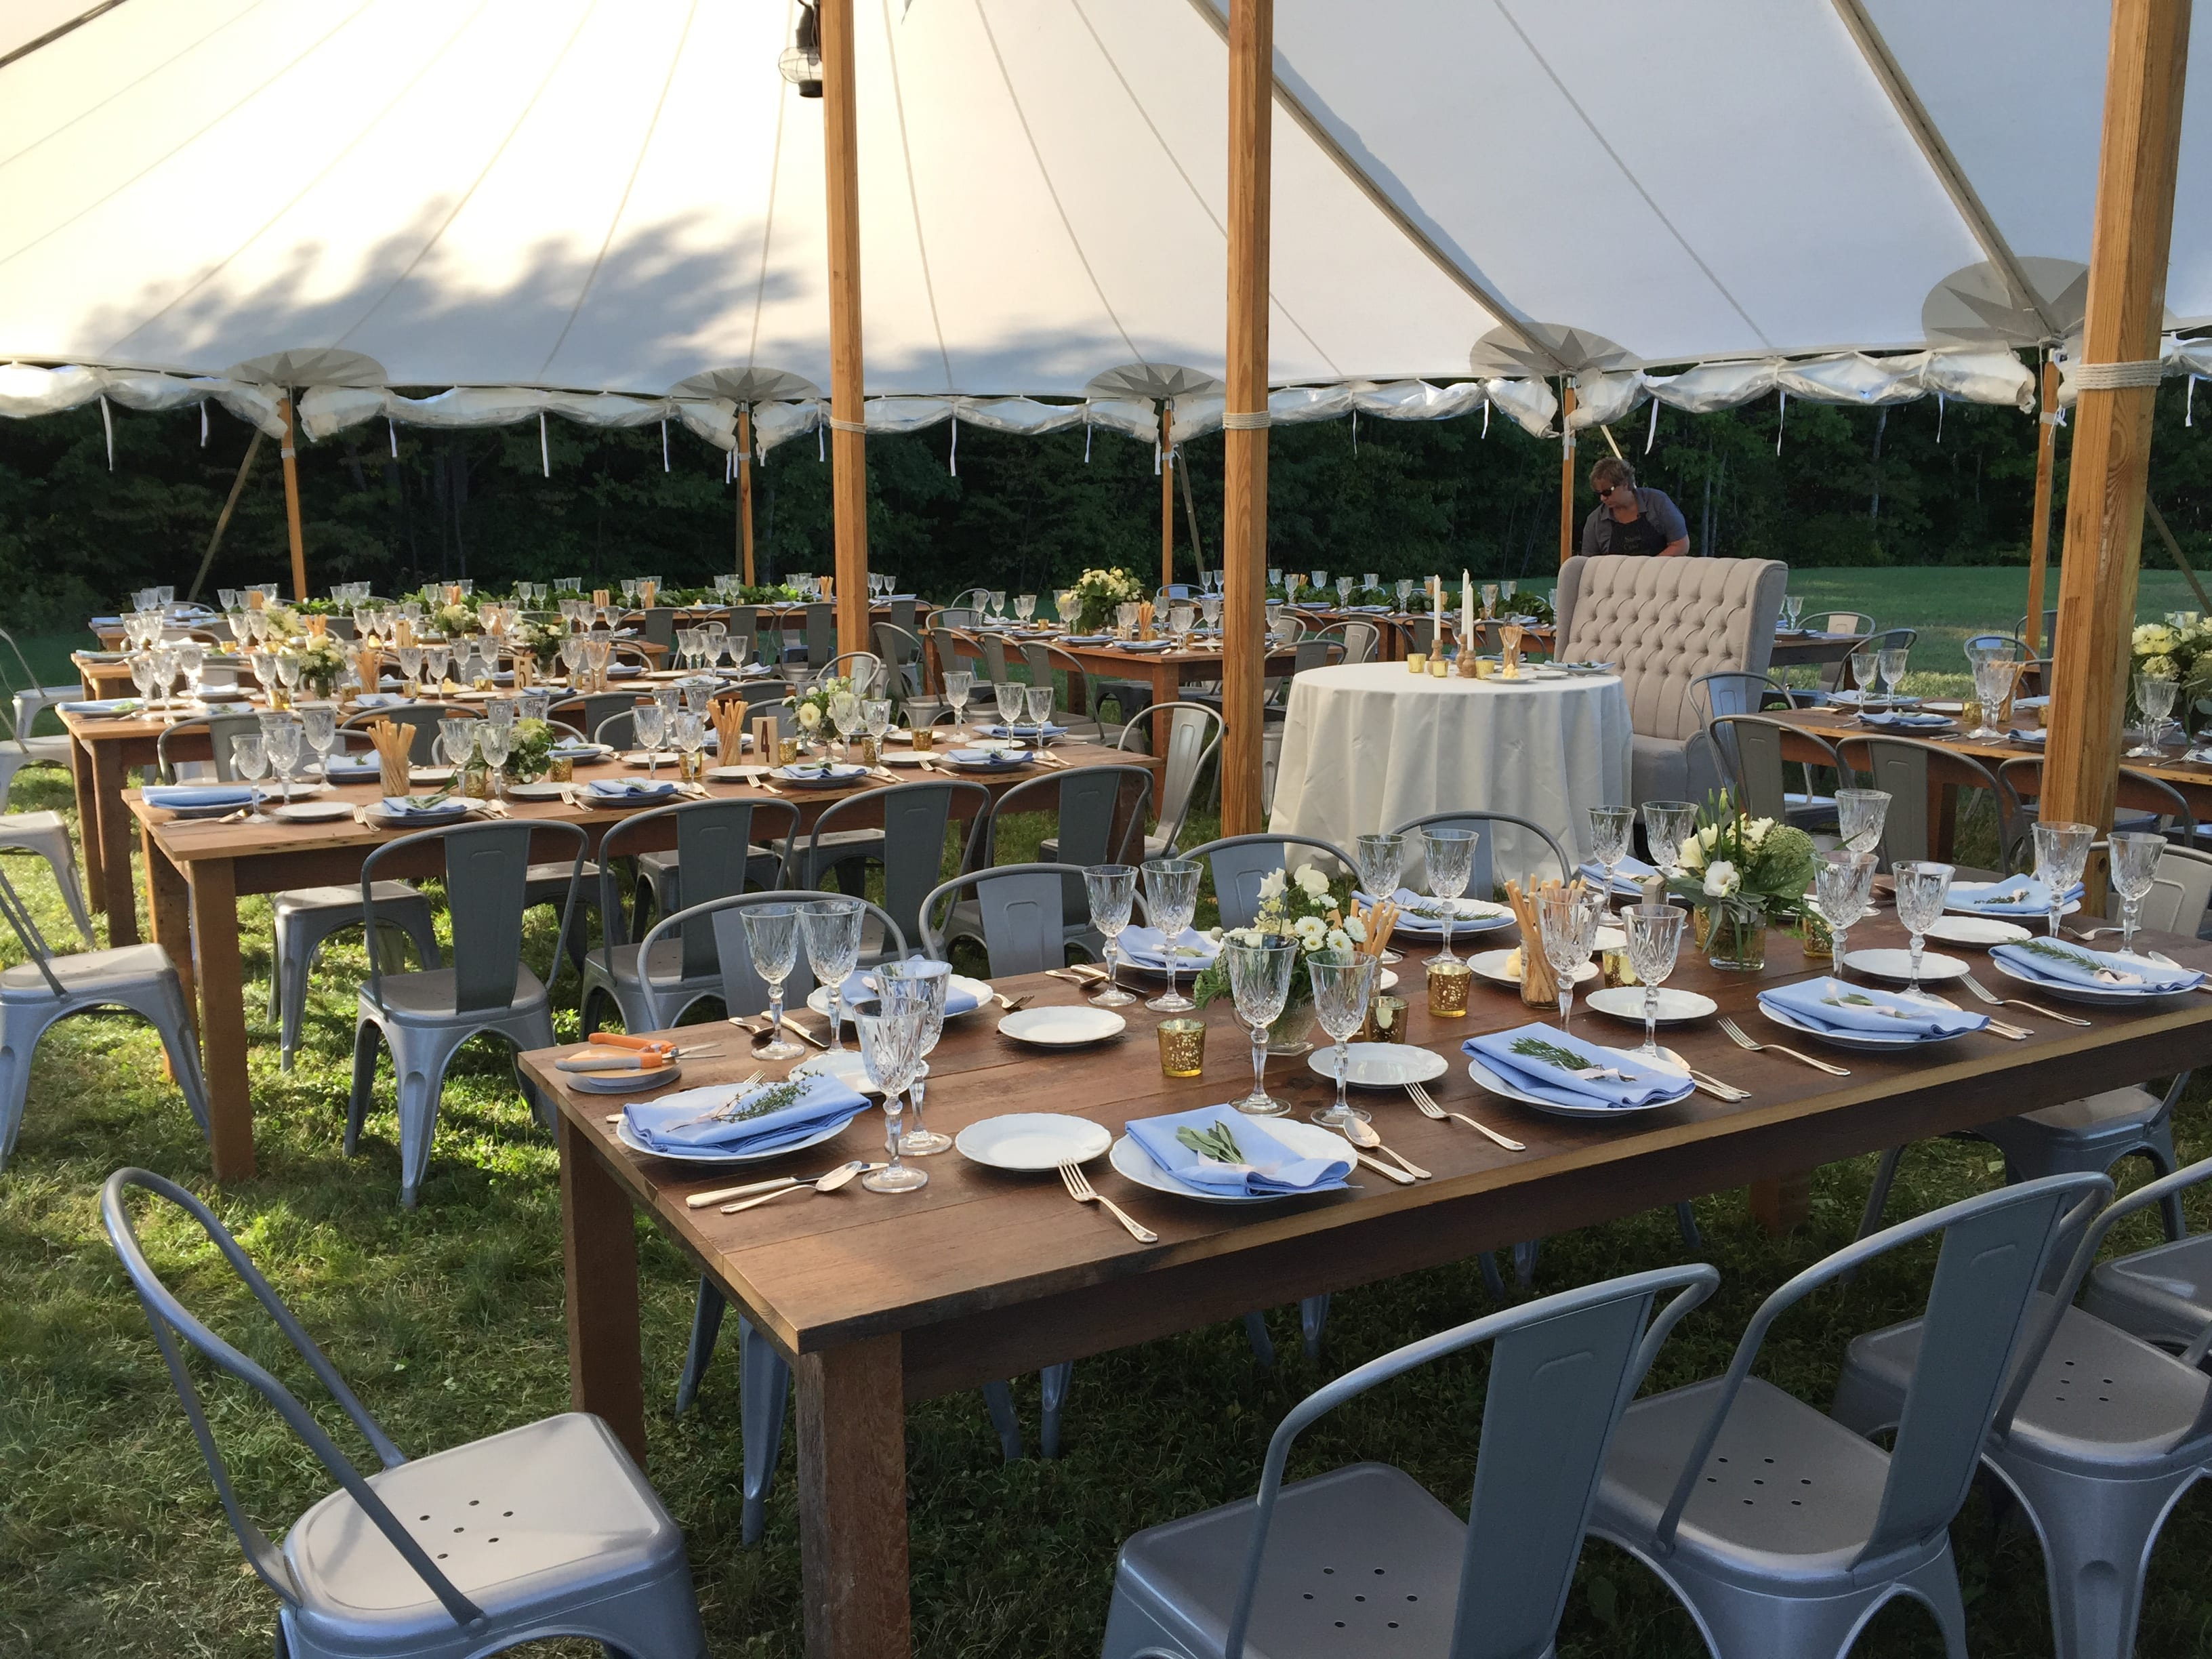 farm tables, sailcloth tent, bistro chairs   buffet vs plated wedding